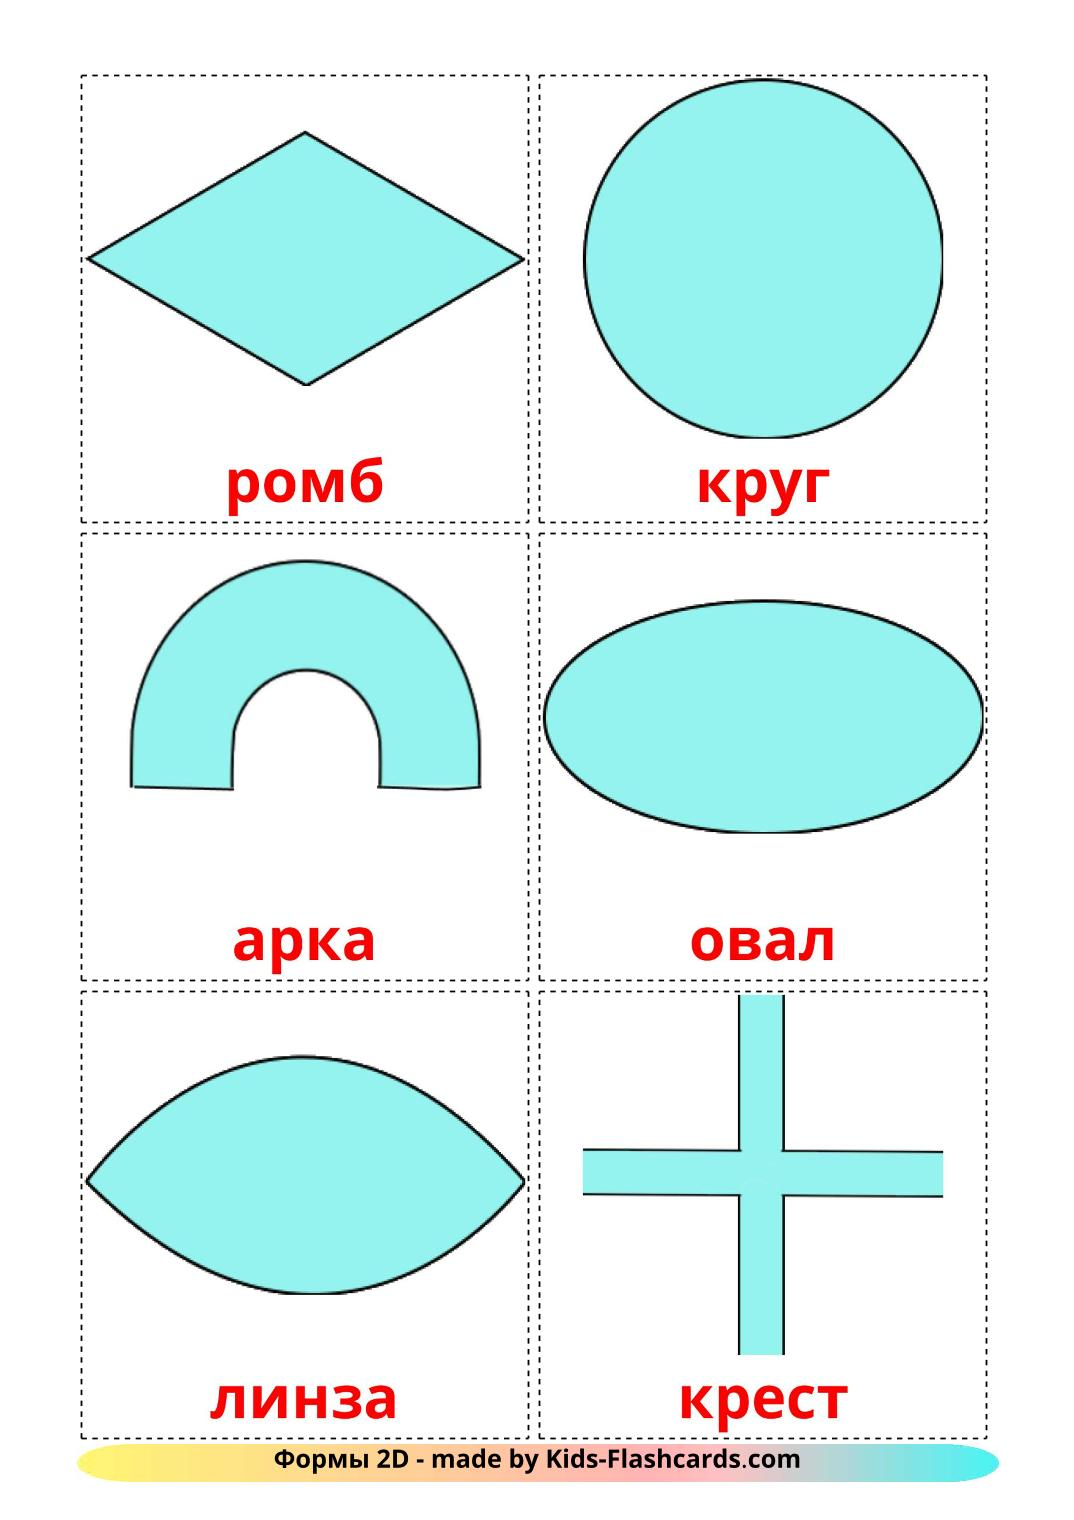 2D Shapes - 35 Free Printable russian Flashcards